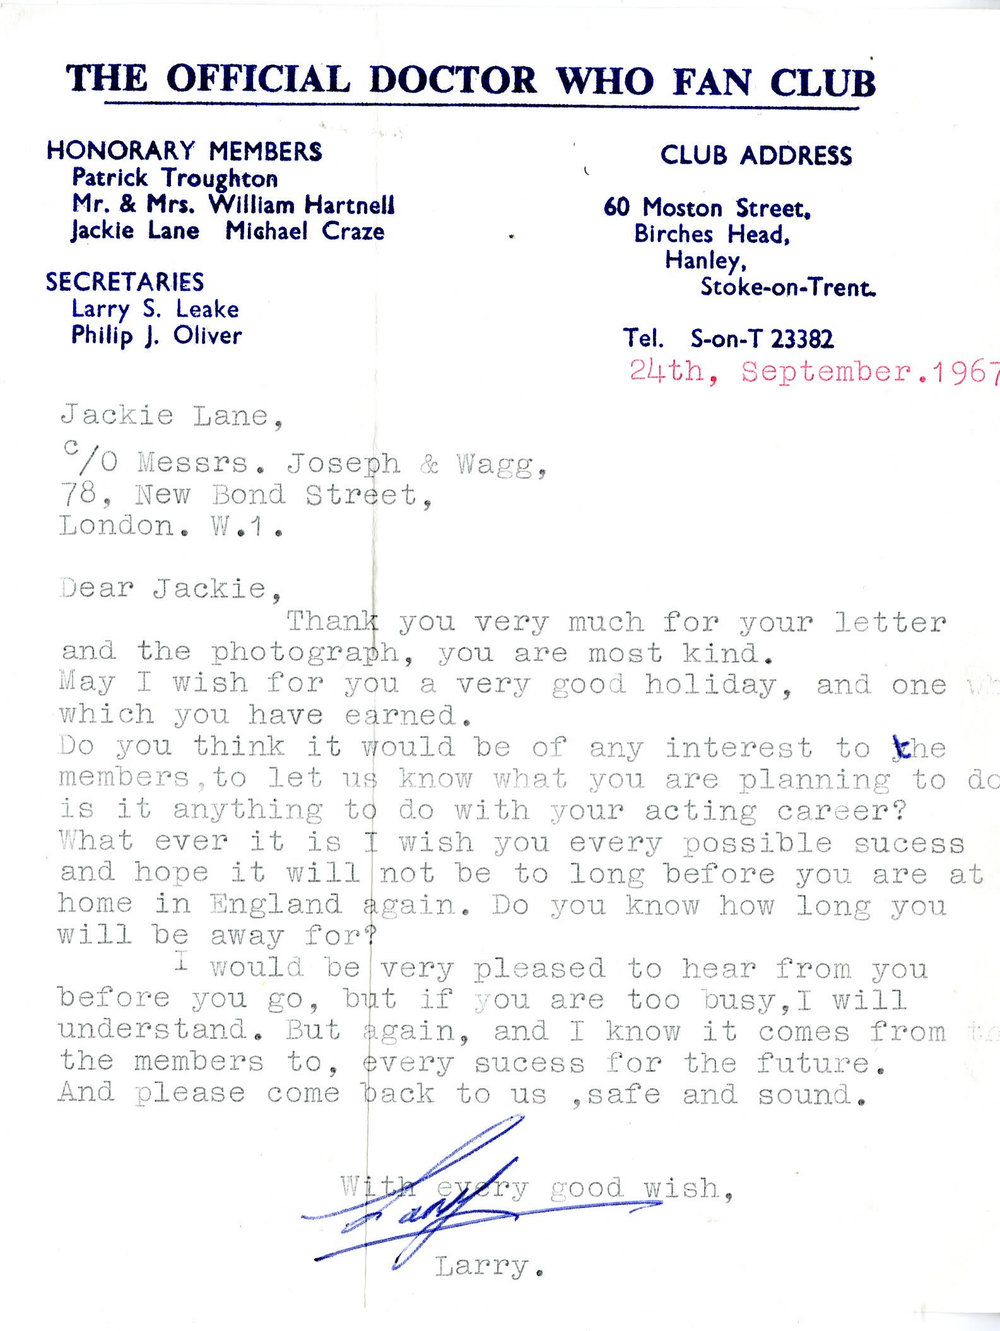 Letter from The Official Doctor Who Fan Club, dated 24 September 1967, to Jackie Lane (from the Jackie Lane archive)